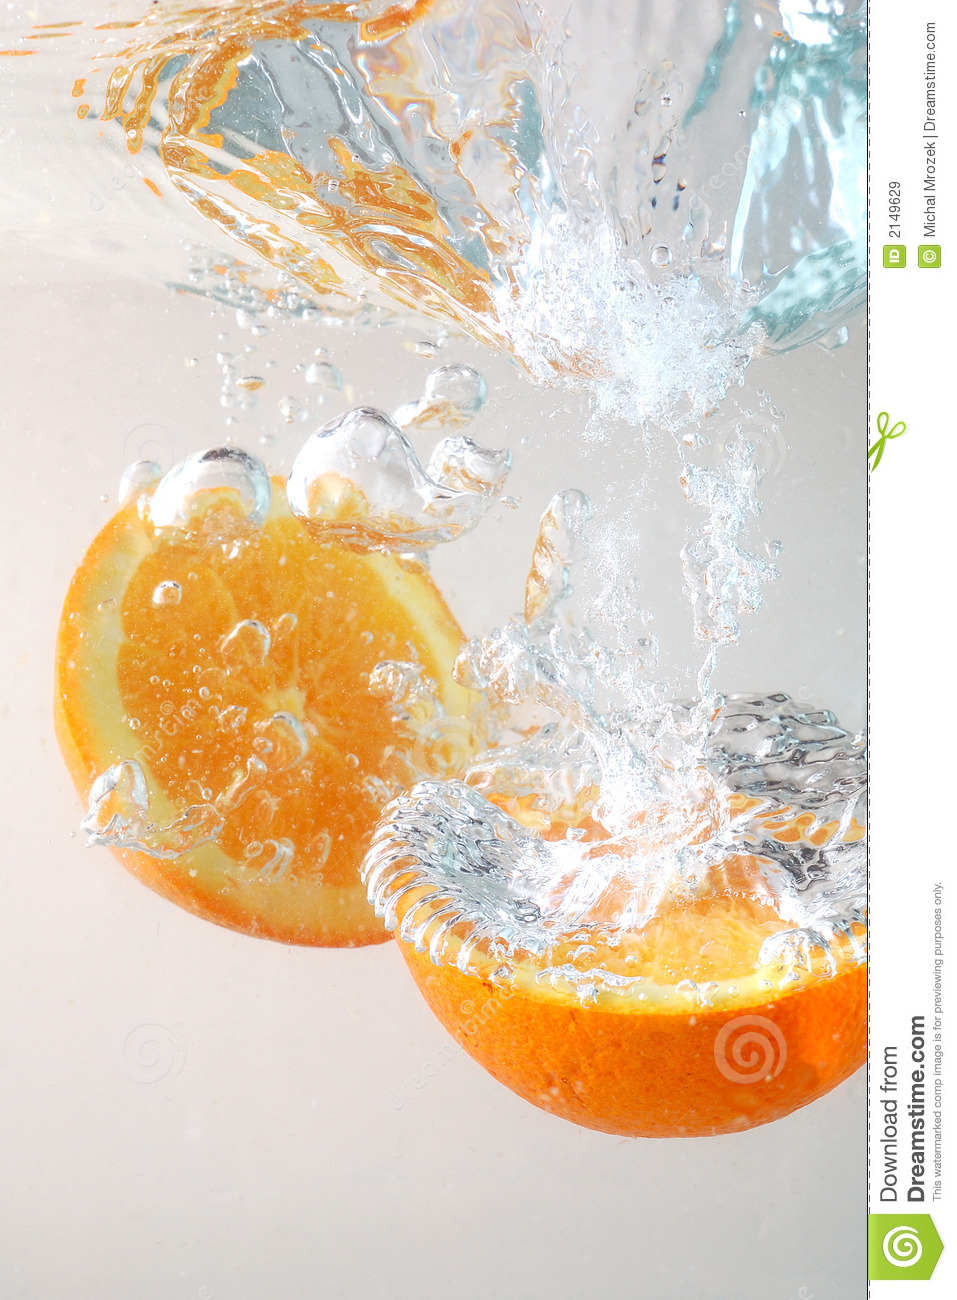 Recipe for a 32 oz Ball jar: 3 orange slices and 2 lemon slices. Squeeze the juice of any end pieces into the mix. Squeeze the juice of any end pieces into the mix. Chill for two hours.